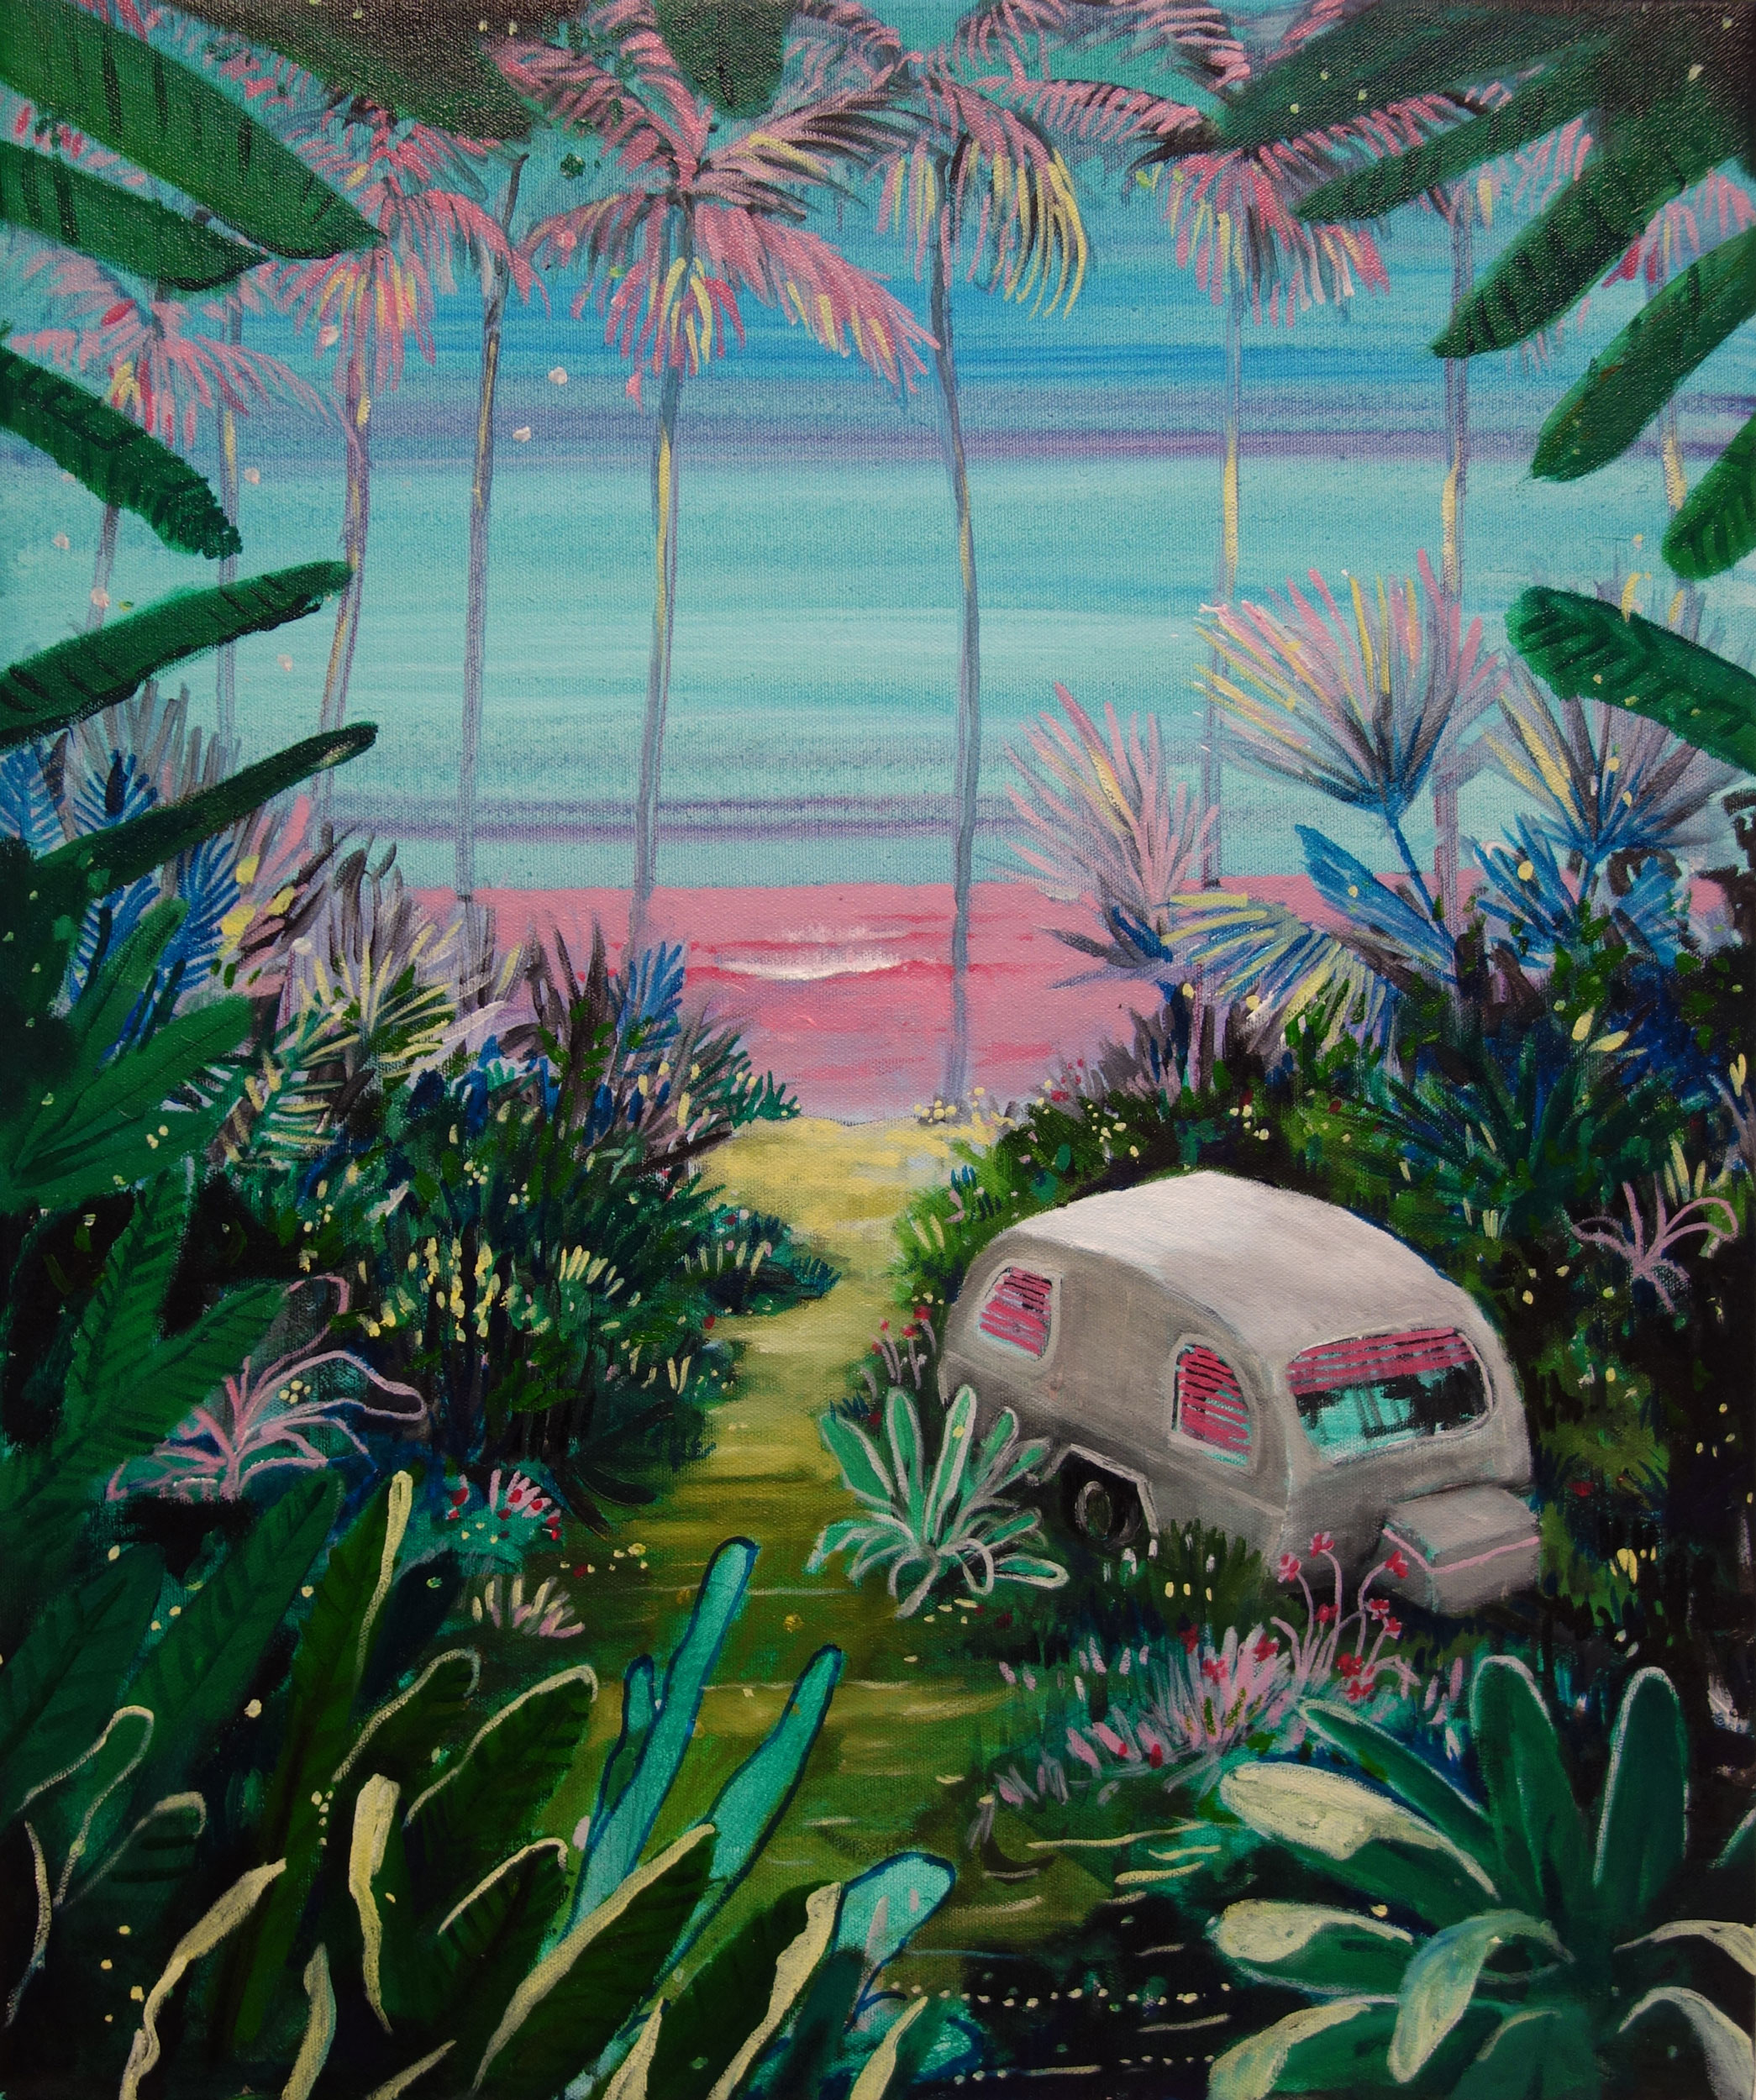 Caravan paradise II (in private collection)